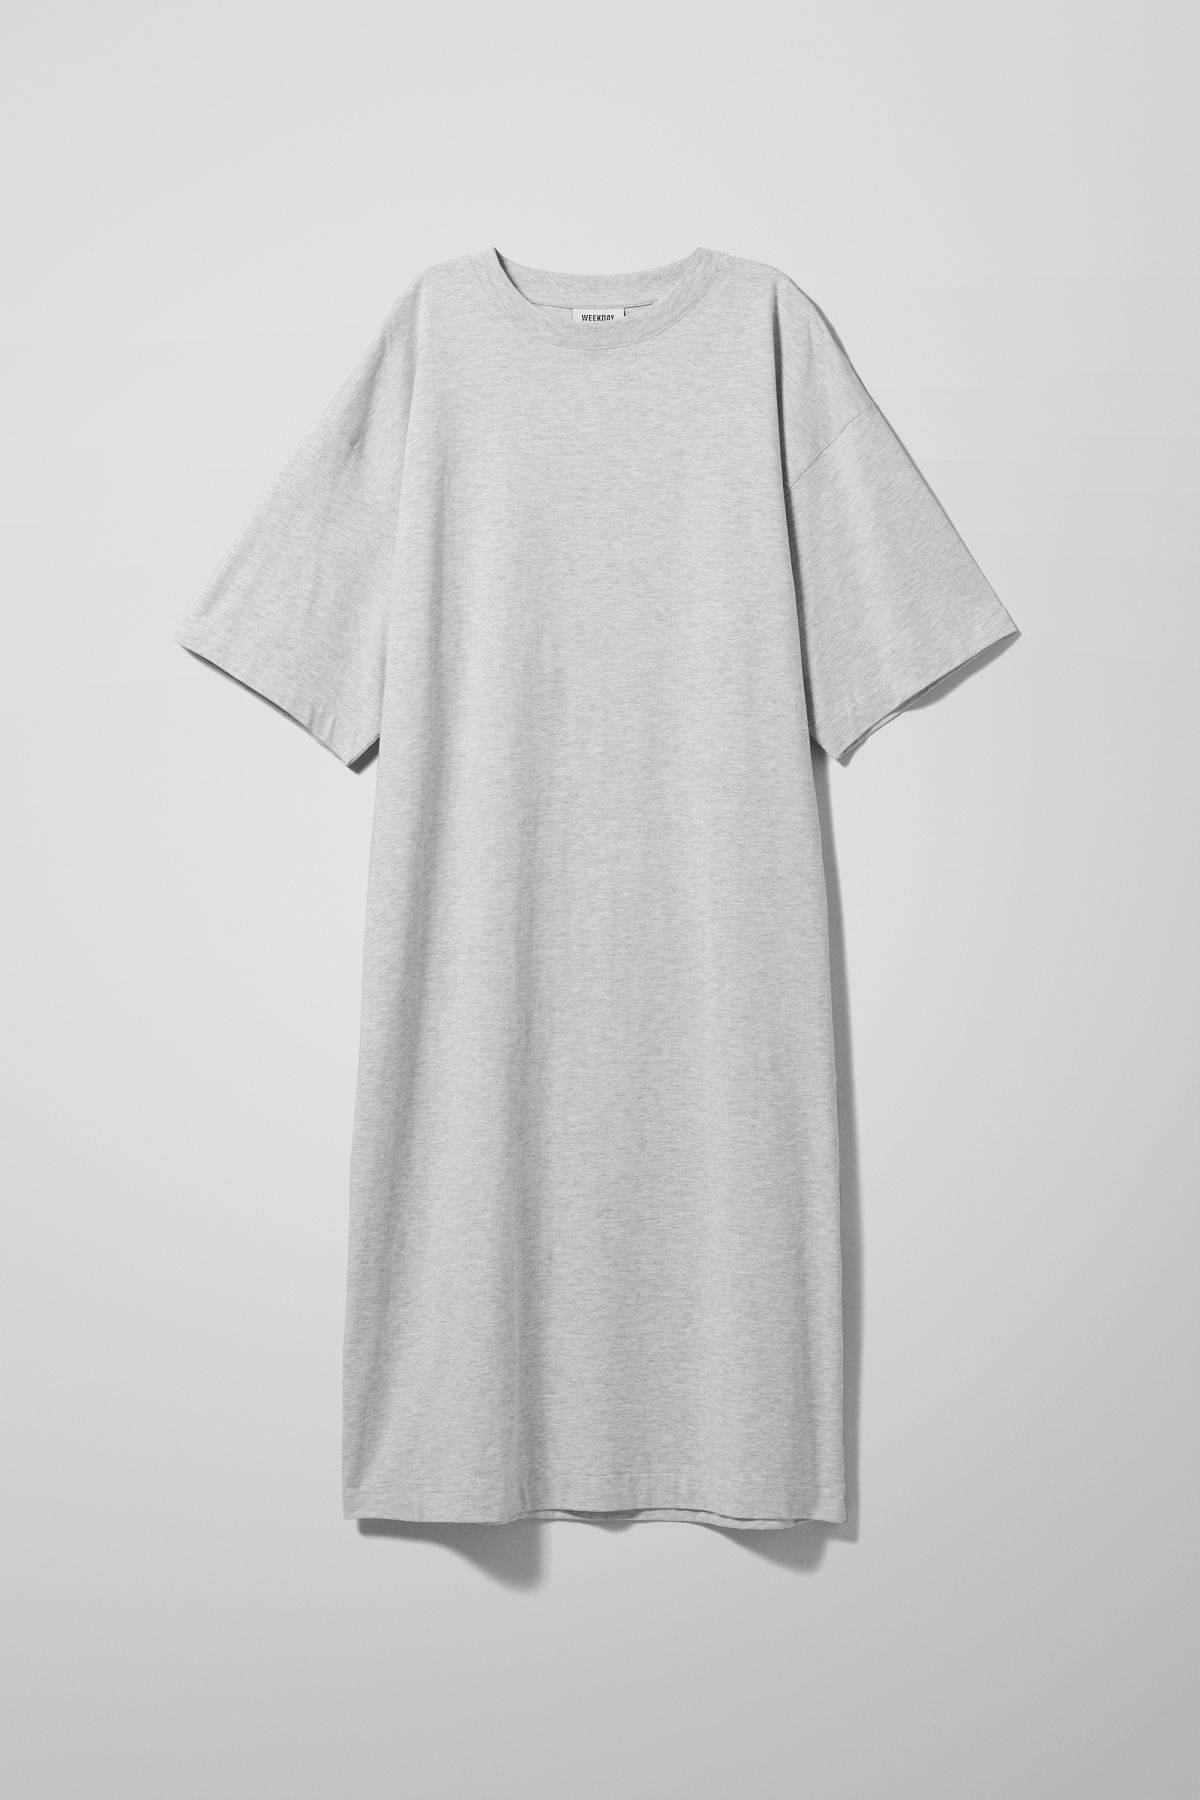 Image of Ines T-Shirt Dress - Grey-S